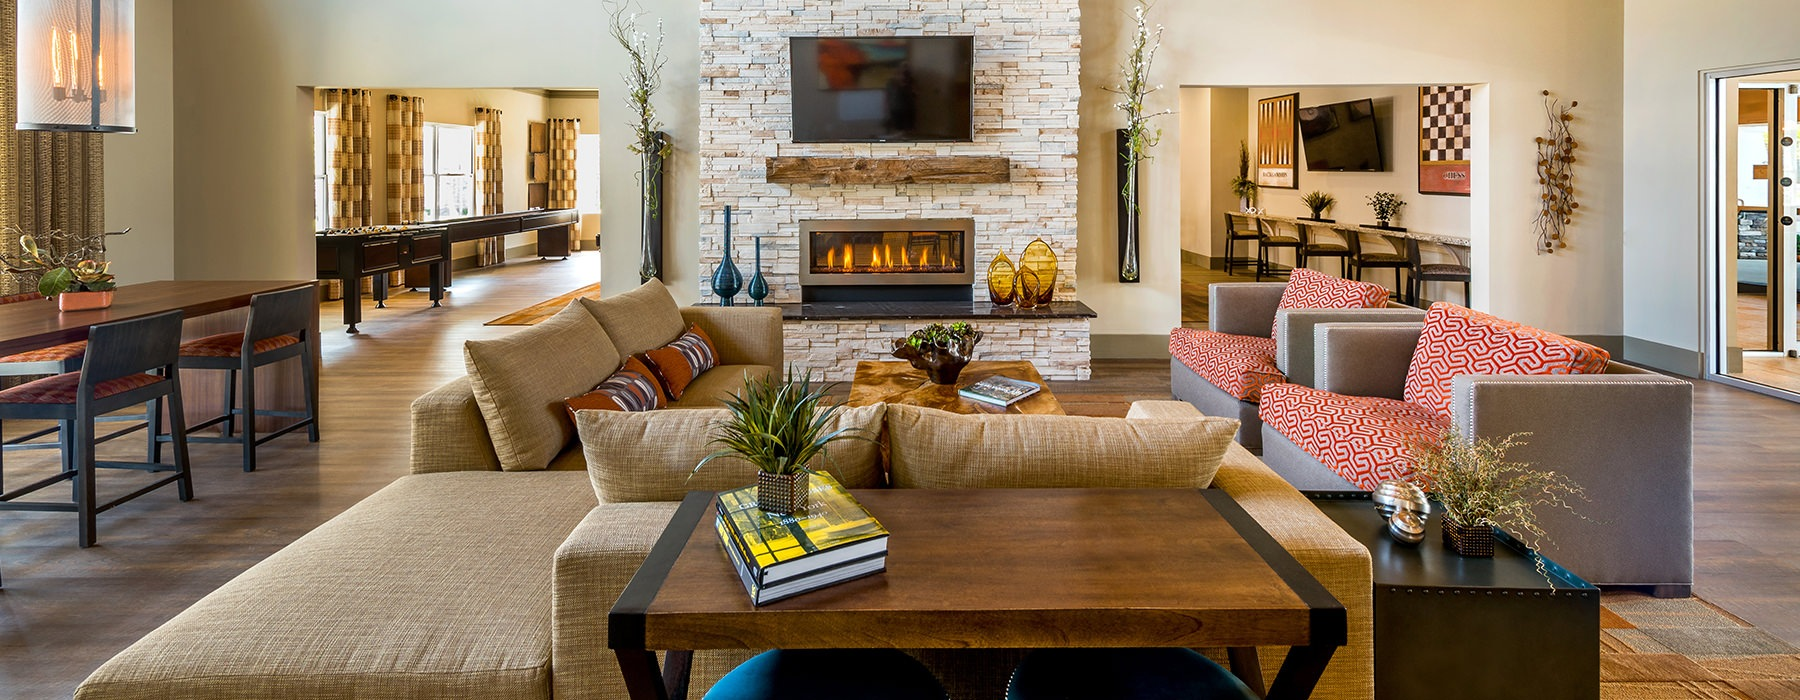 Spacious and well lit clubhouse with bar seating and ample chairs for entertaining.